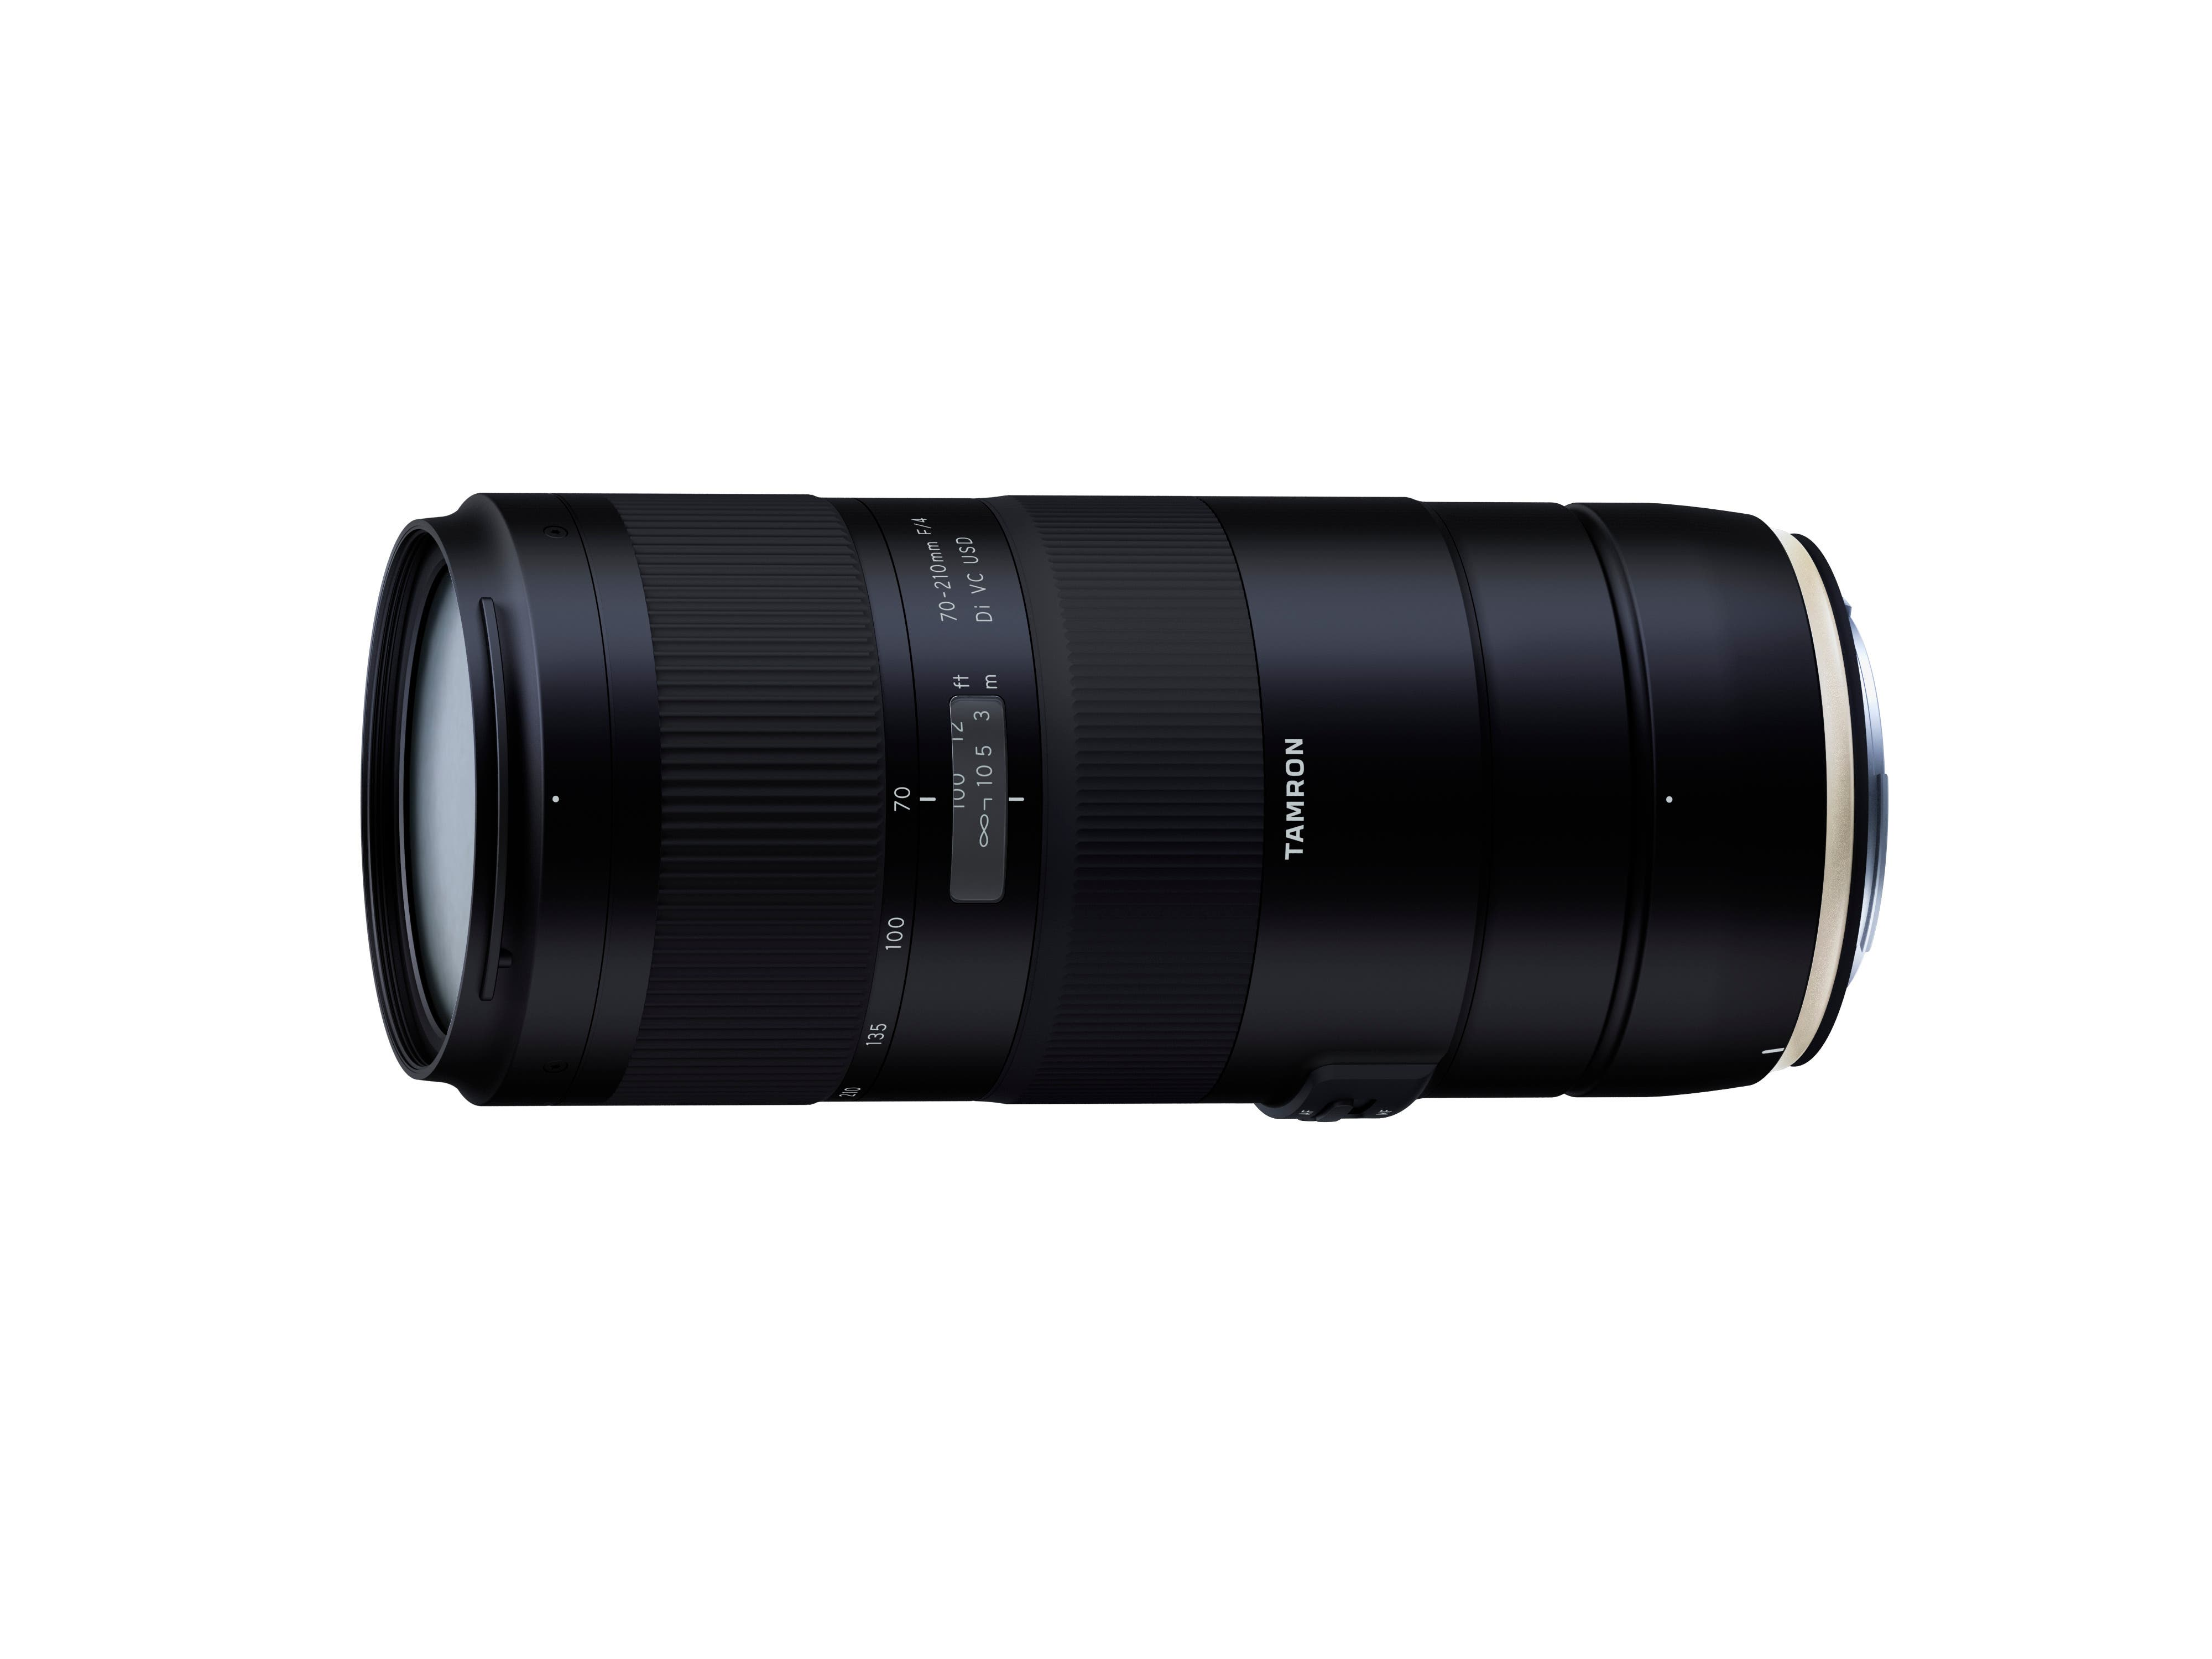 The Tamron 70-210mm F4 Di VC USD is Coming for Canon and Nikon DSLRs